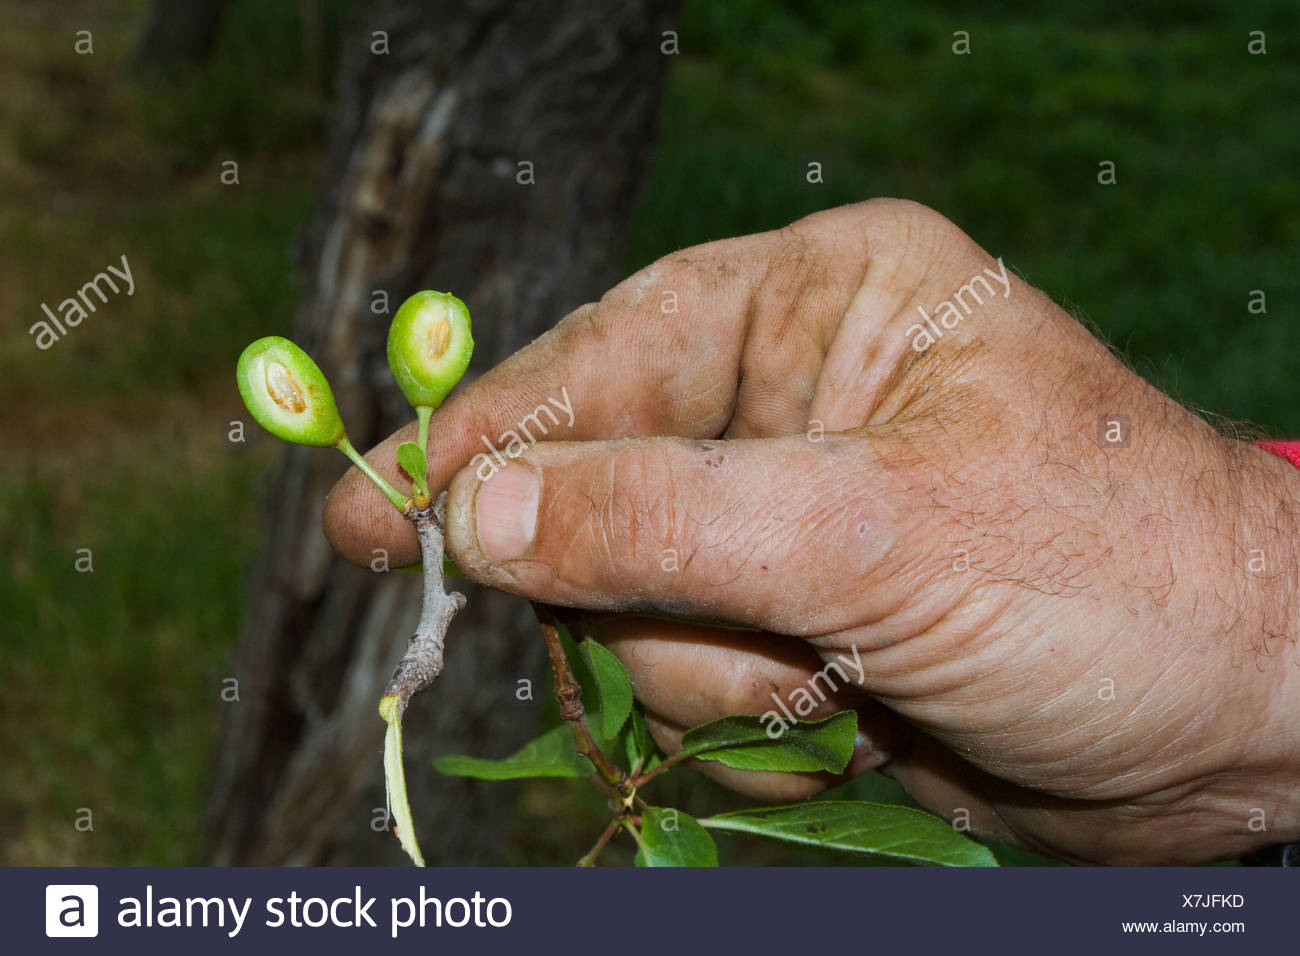 The hand of a prune grower holding damaged immature prunes caused by a heavy unusual Spring freeze / Red Bluff, California, USA. - Stock Image